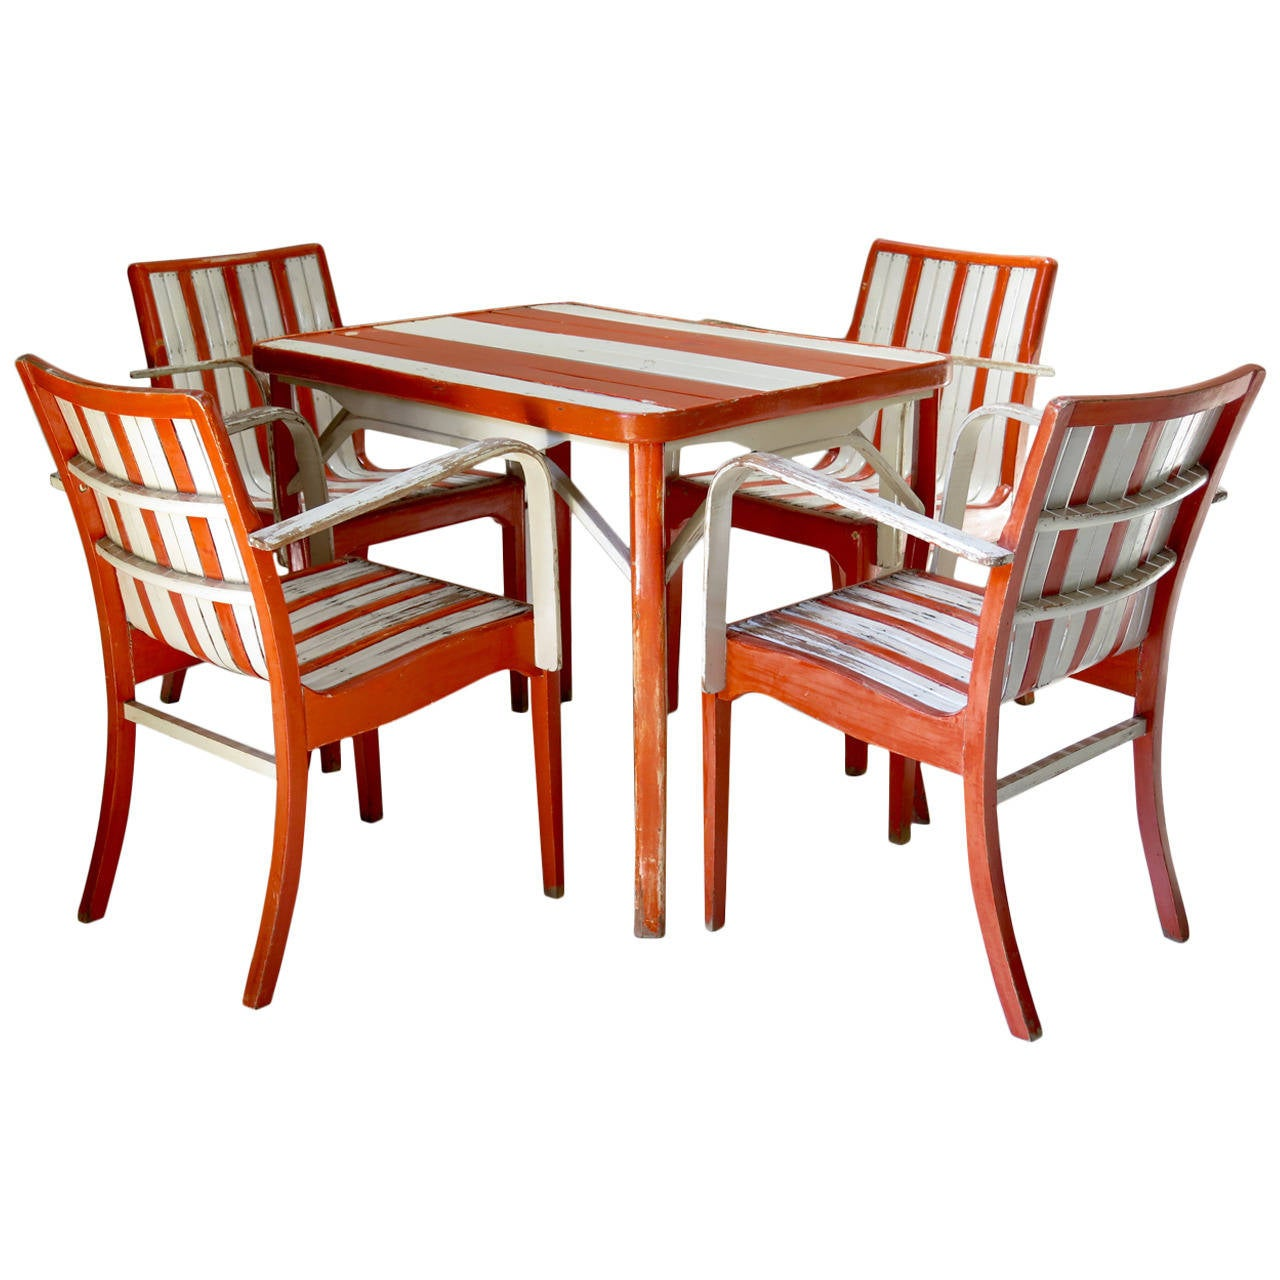 Beach Spirit Set of Four Armchairs and a Table, France, 1950s